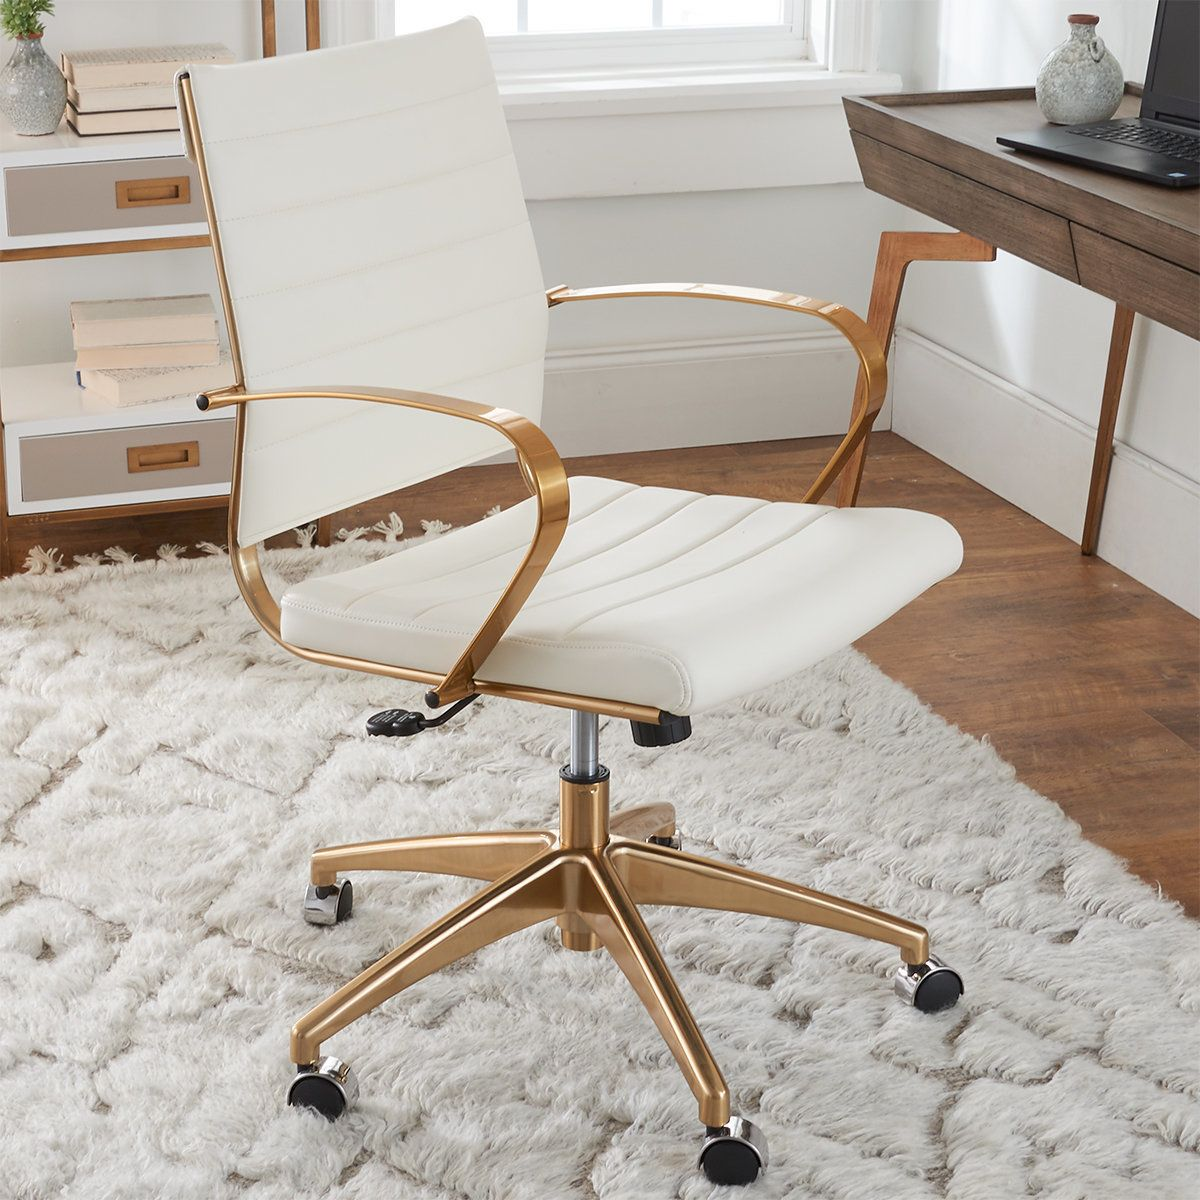 Gilded Glam Desk Chair In 2020 Office Chair Design Cool Desk Chairs Home Office Chairs